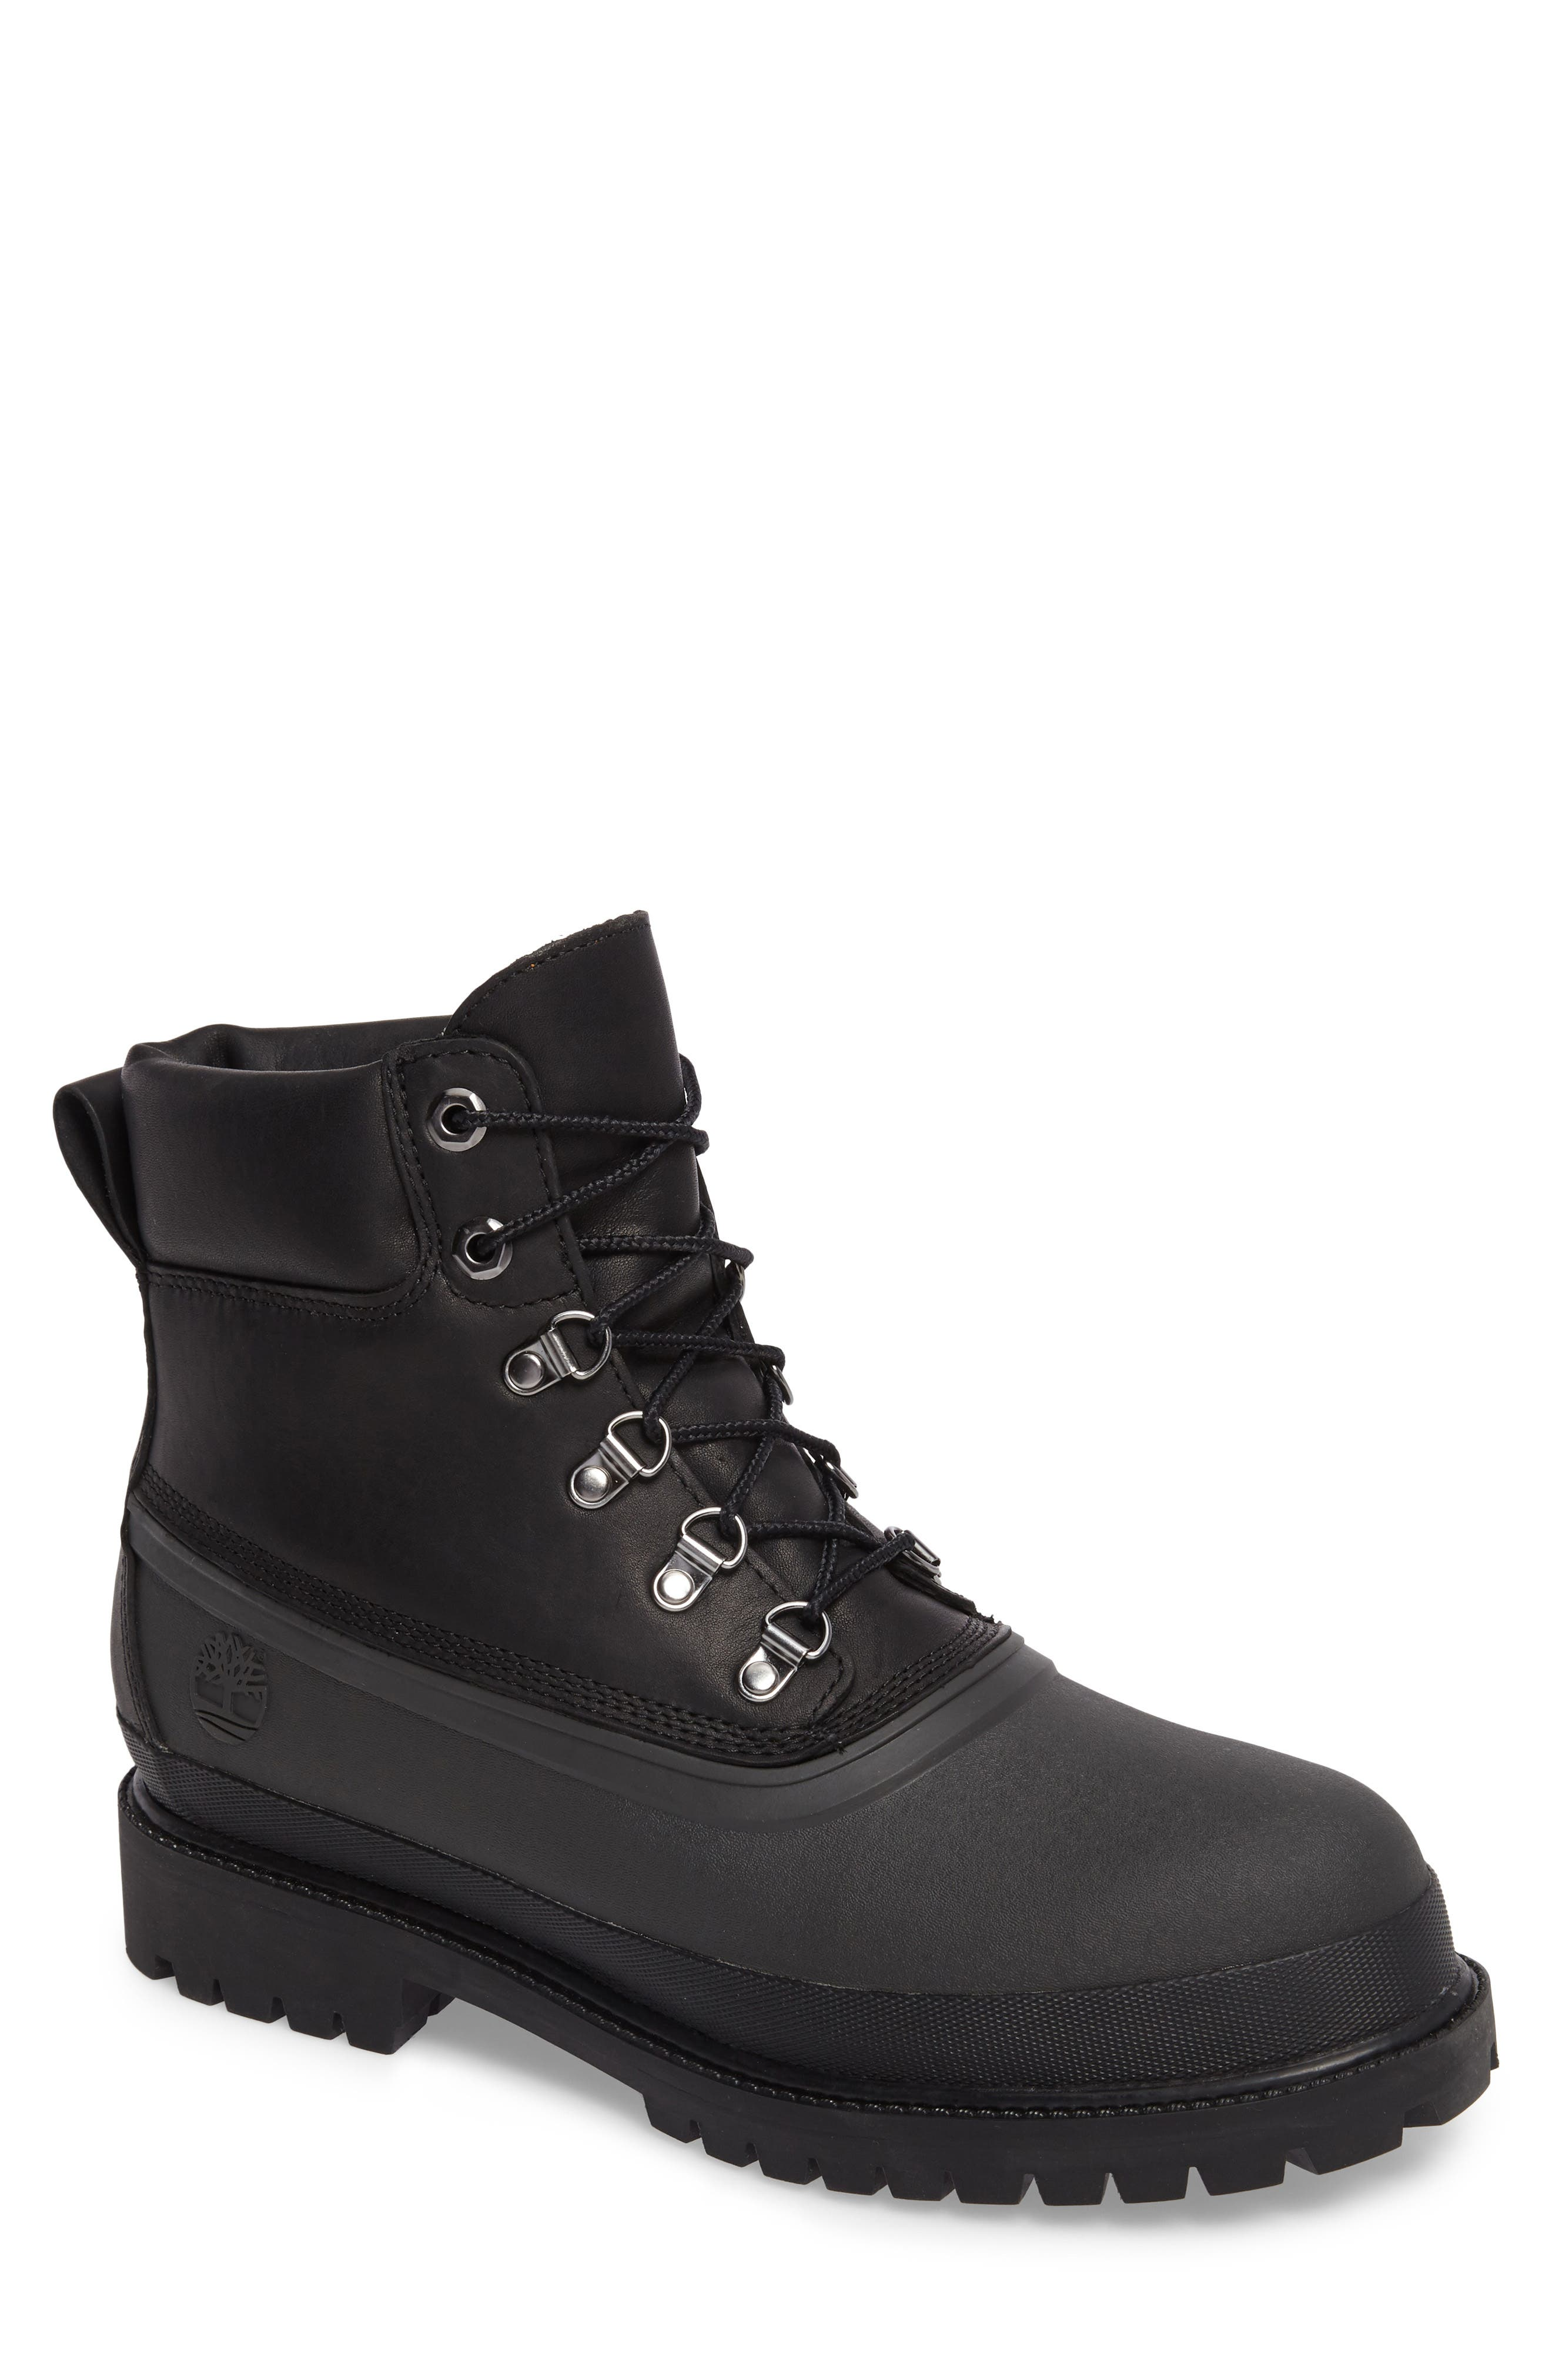 Snow Boot,                         Main,                         color, 001